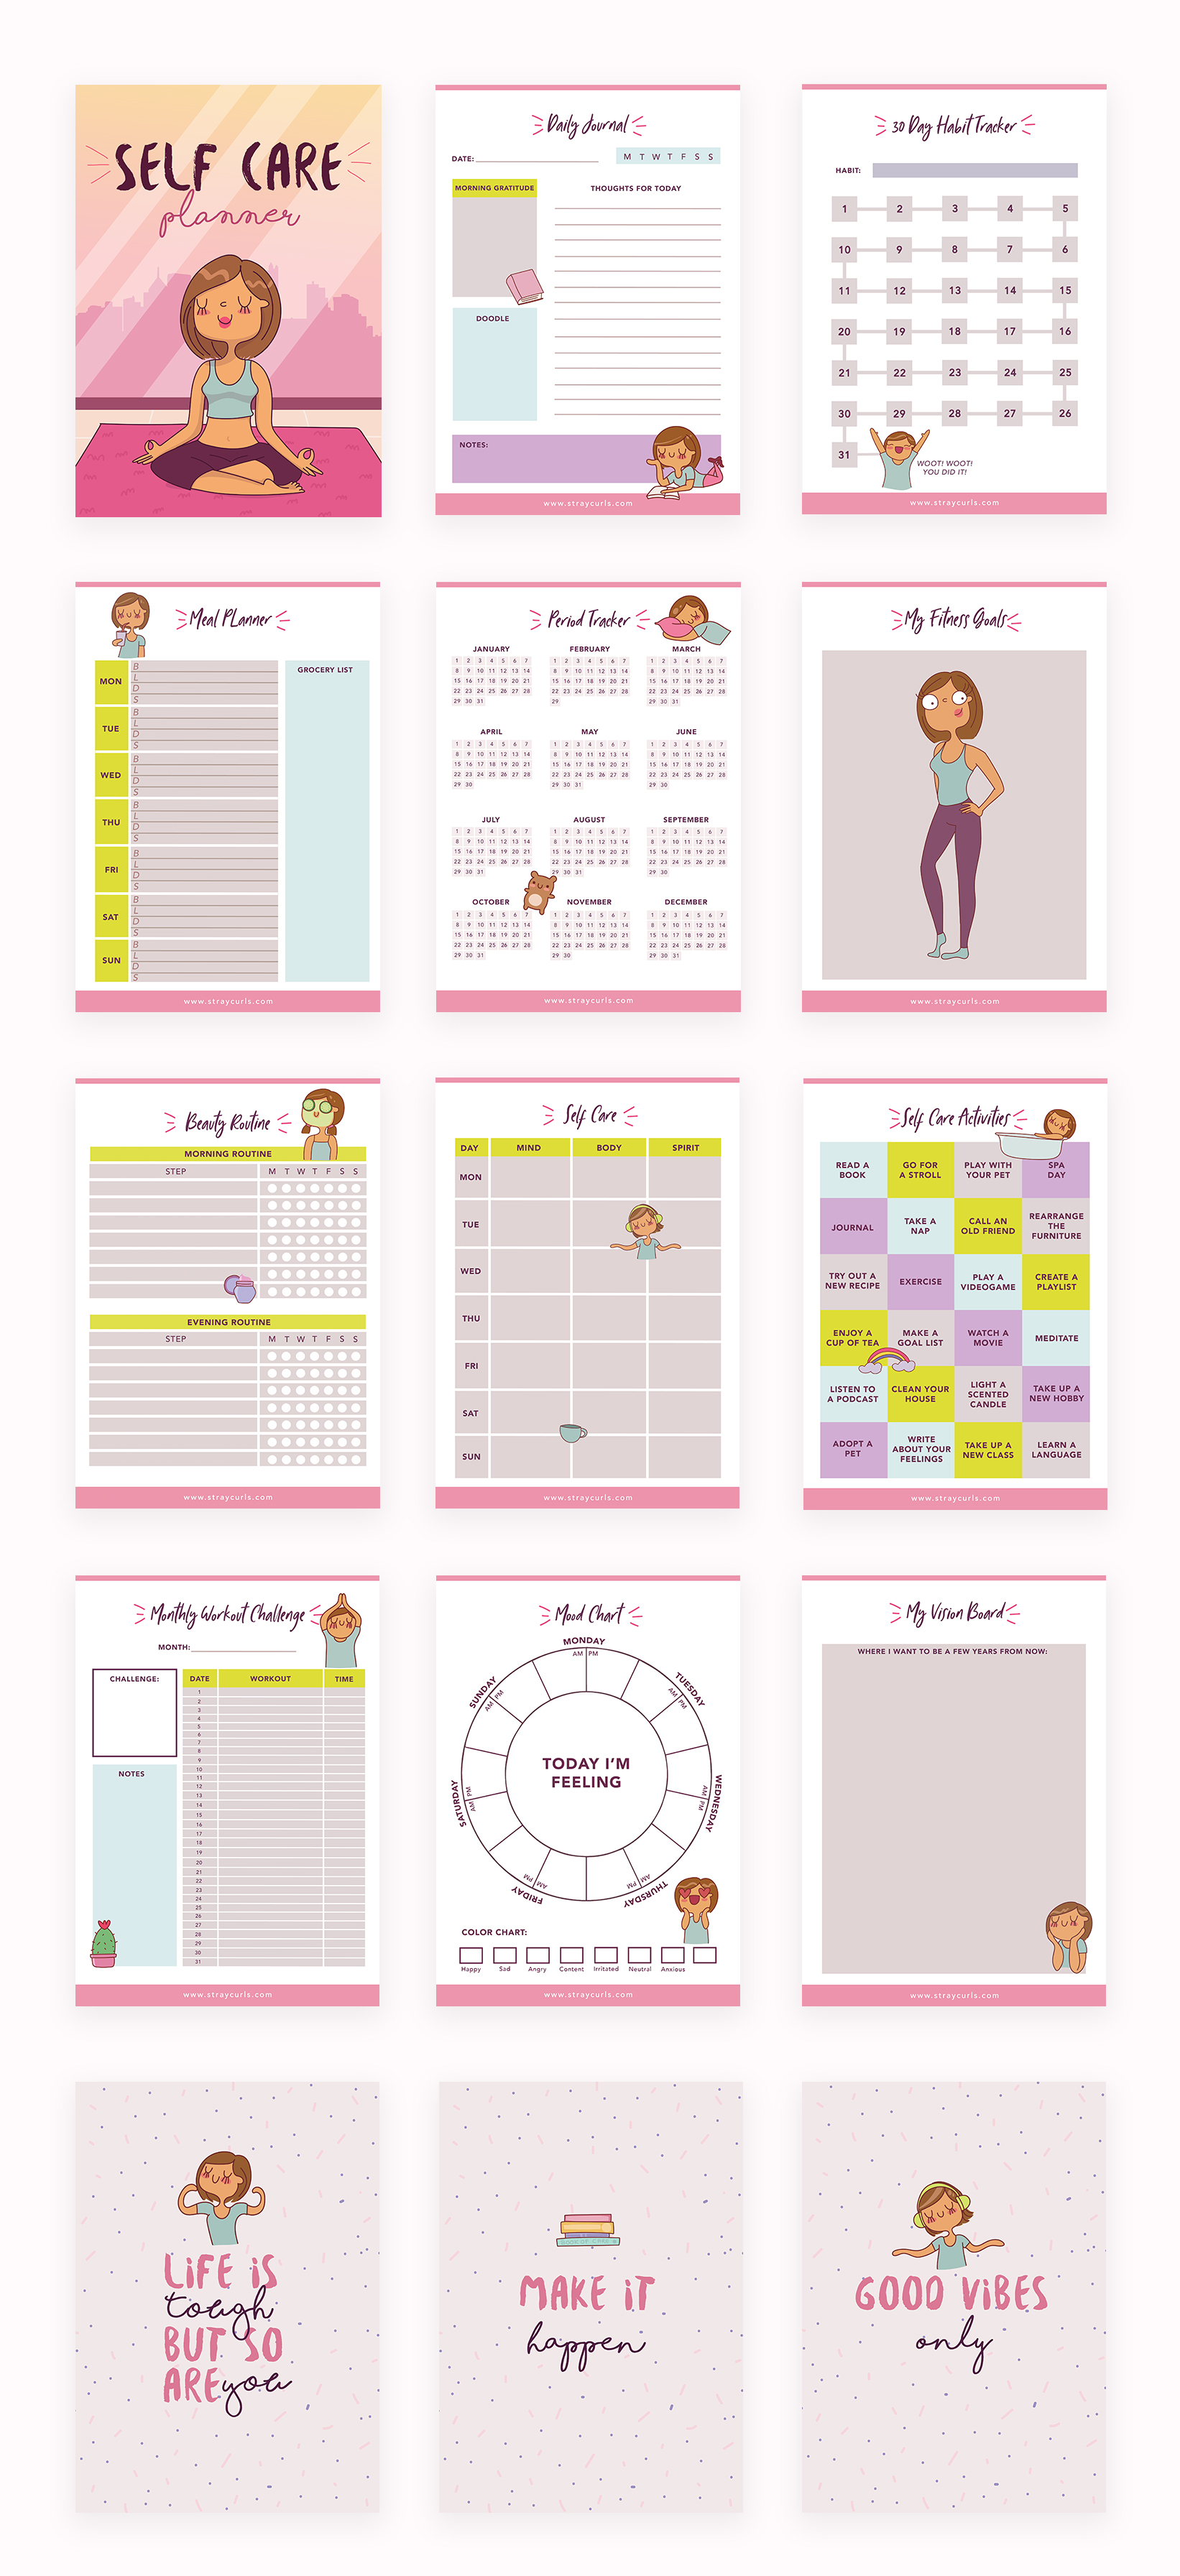 Check out this self care planner printable from Angela Vaz of Stray Curls !